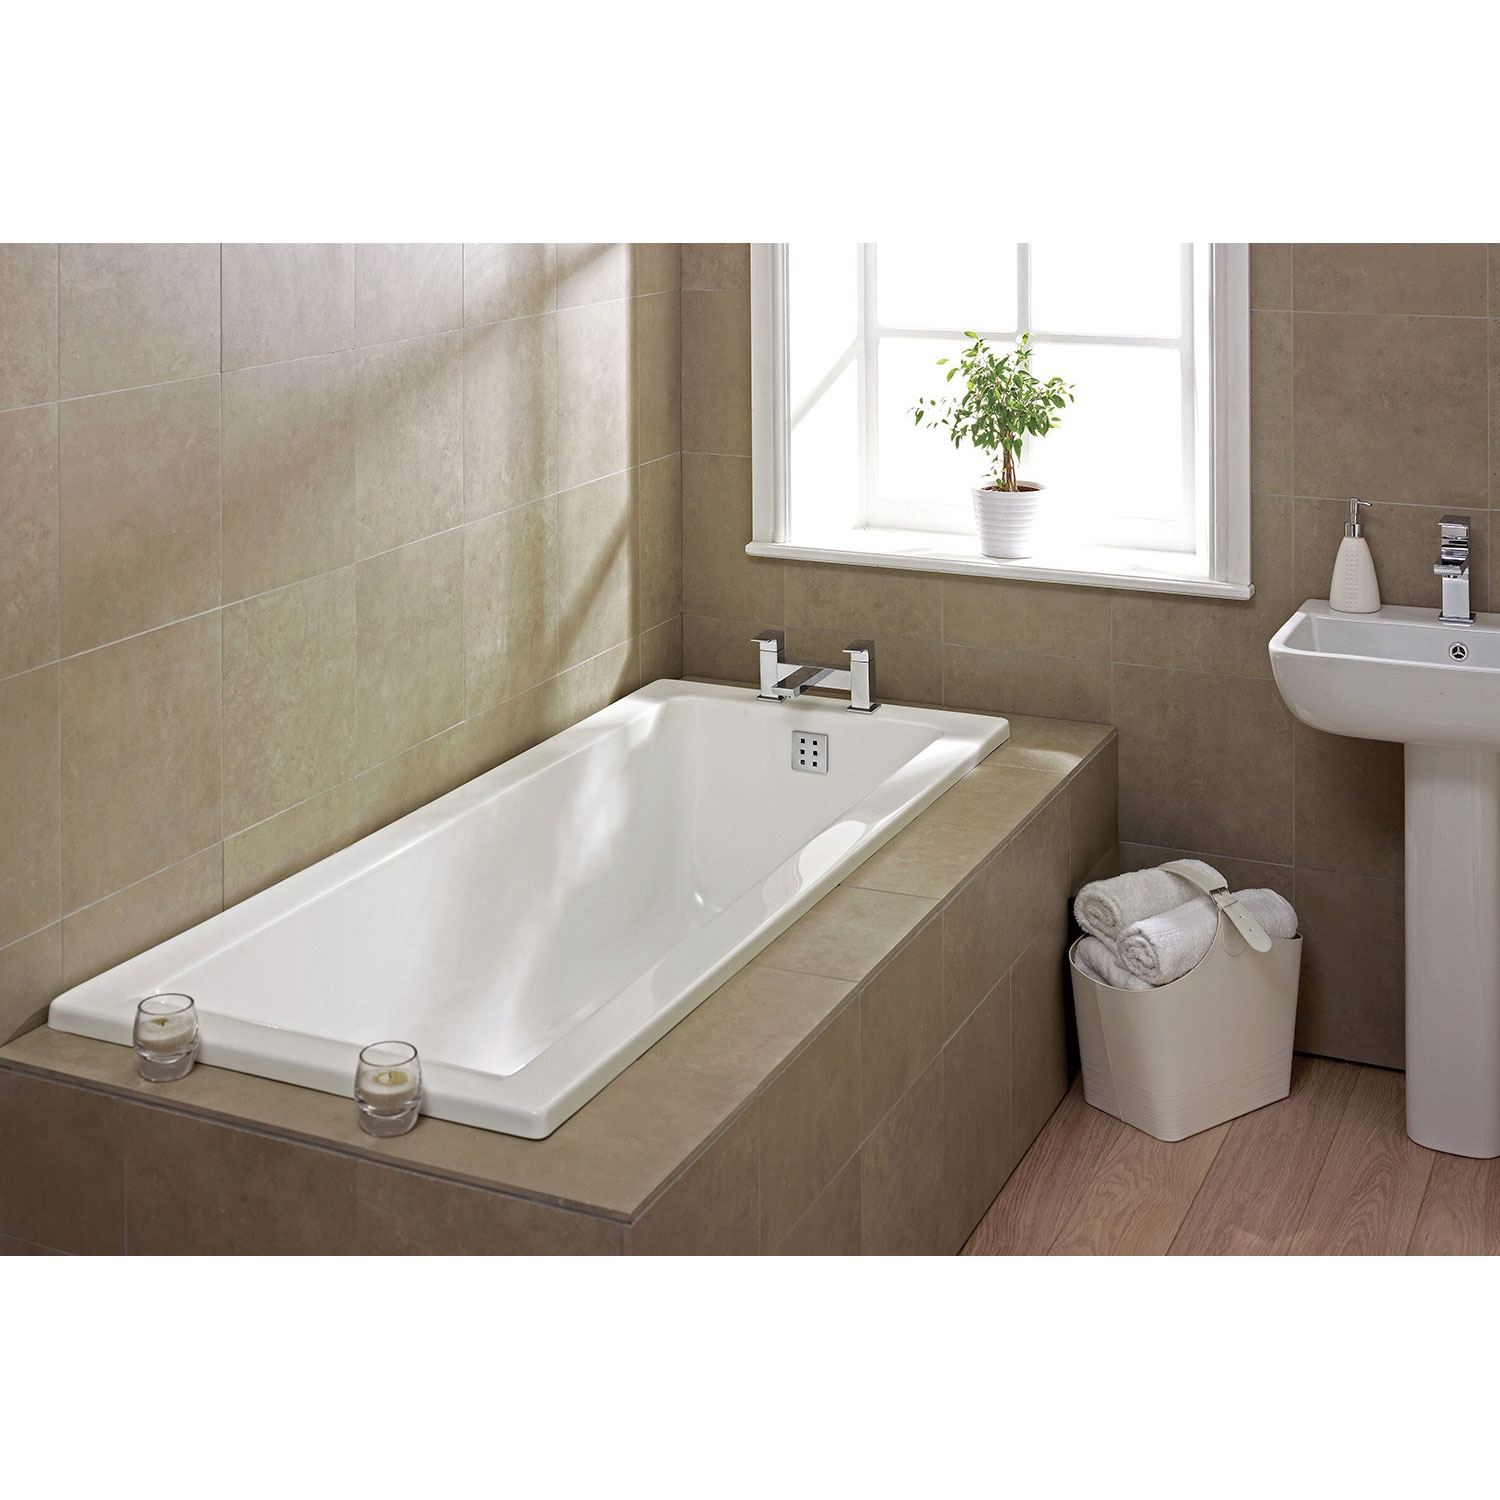 Verona Atlanta Single Ended Rectangular Tungstenite Bath 1700mm x 700mm - 0 Tap Hole-0